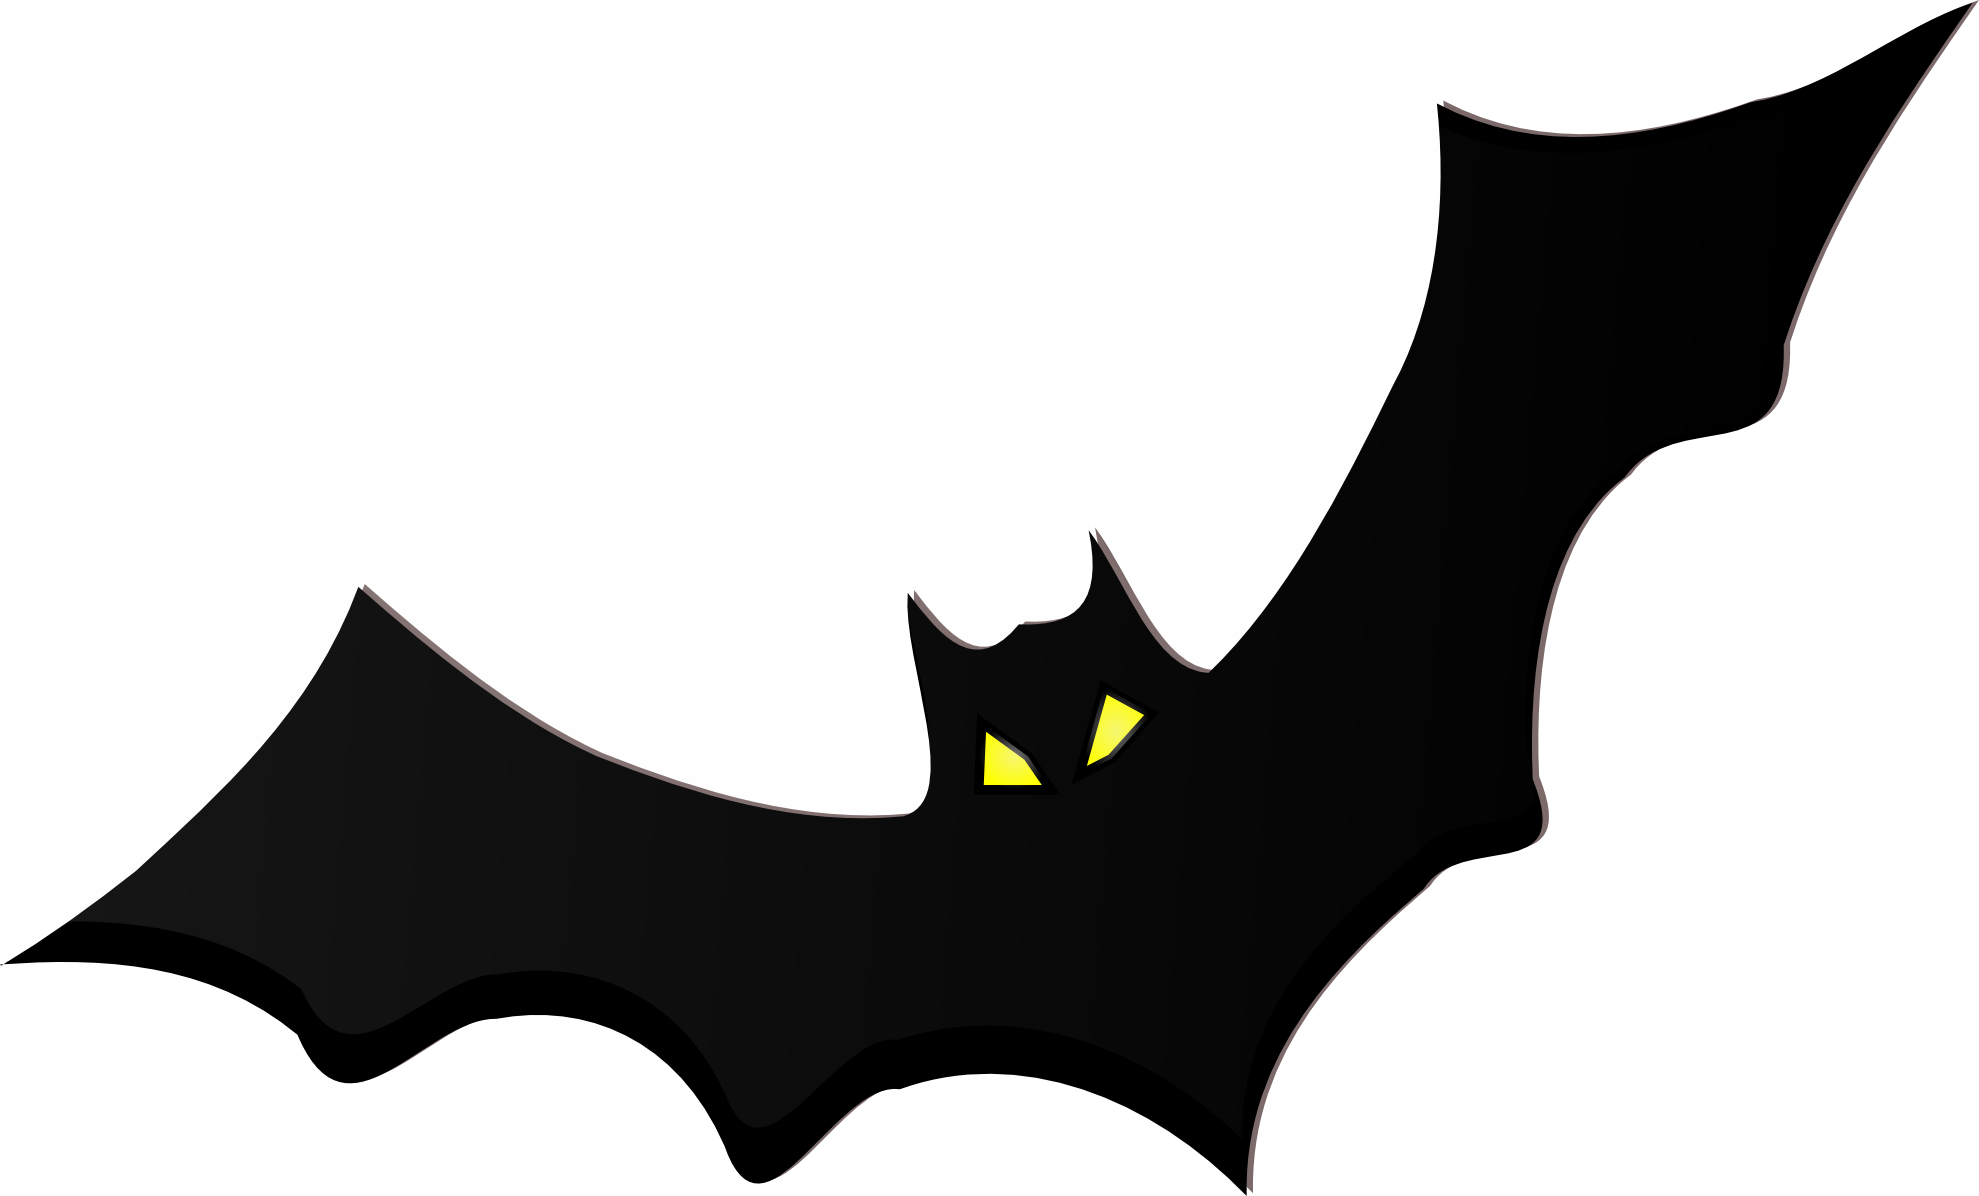 jpg freeuse stock Bats clipart. Bat panda free images.